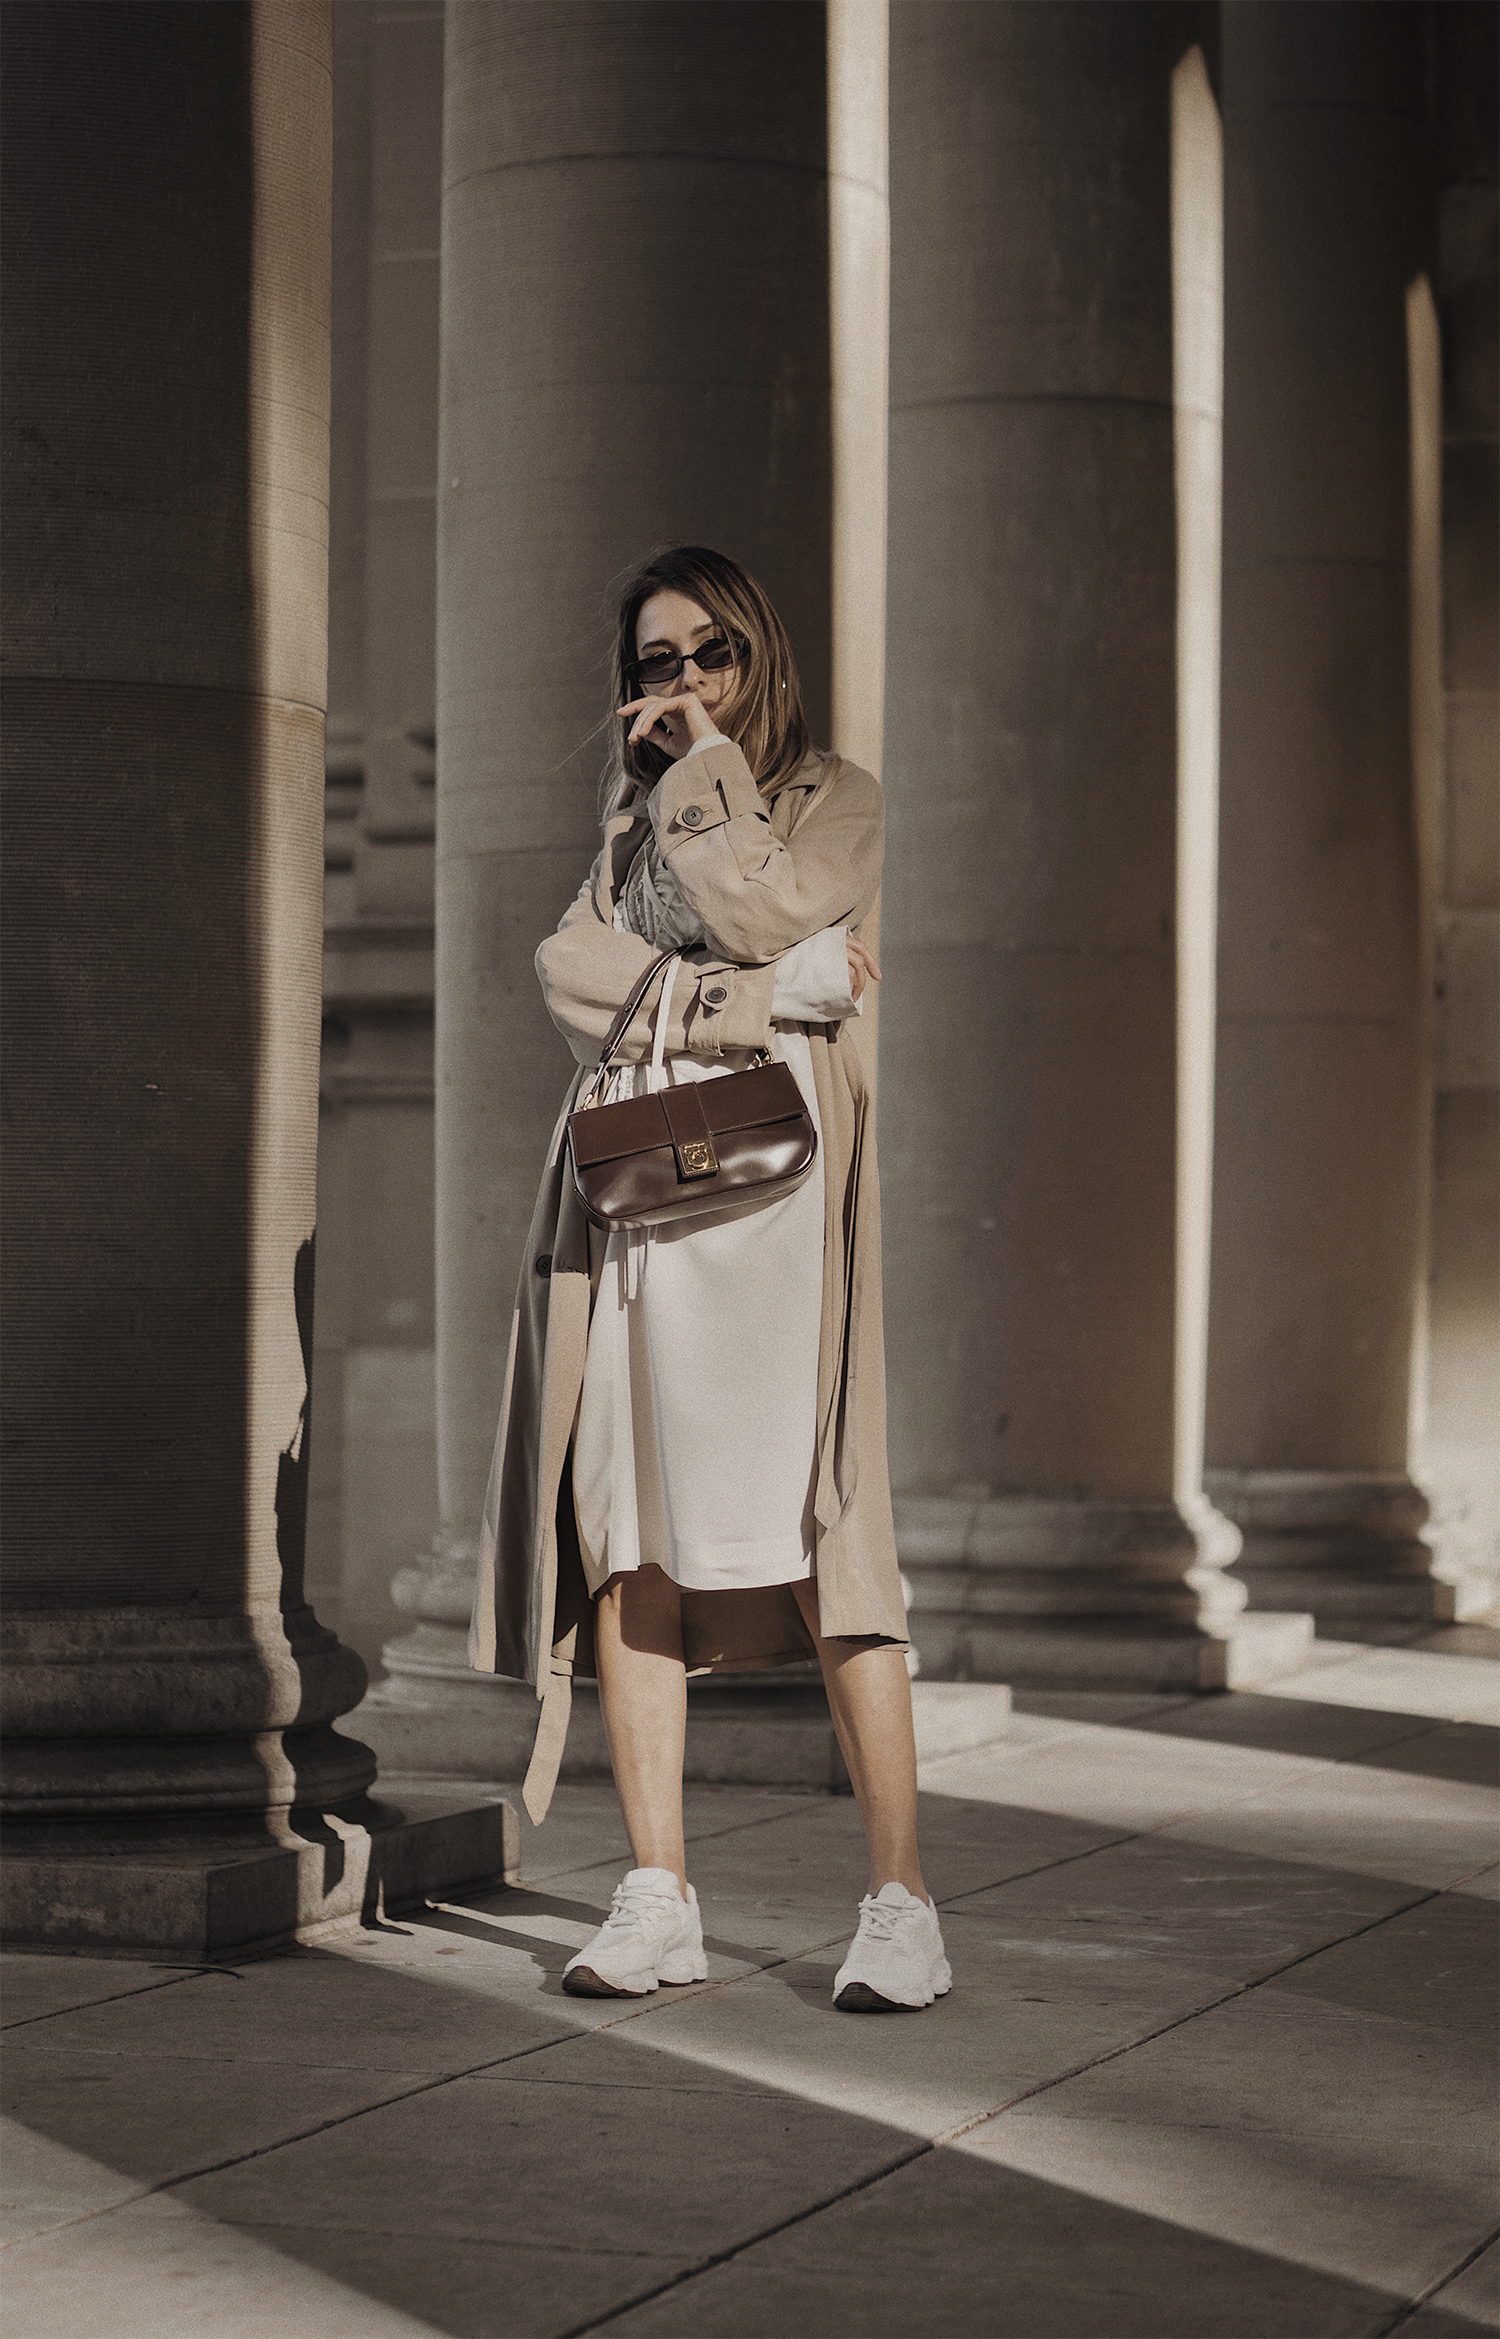 marni_dress_ferragamo_bag_ikrush_street_style_outfit_nyfw_mfw_zara_trench_coat_ugly_father_sneakers_the_white_ocean_lena_juice_01